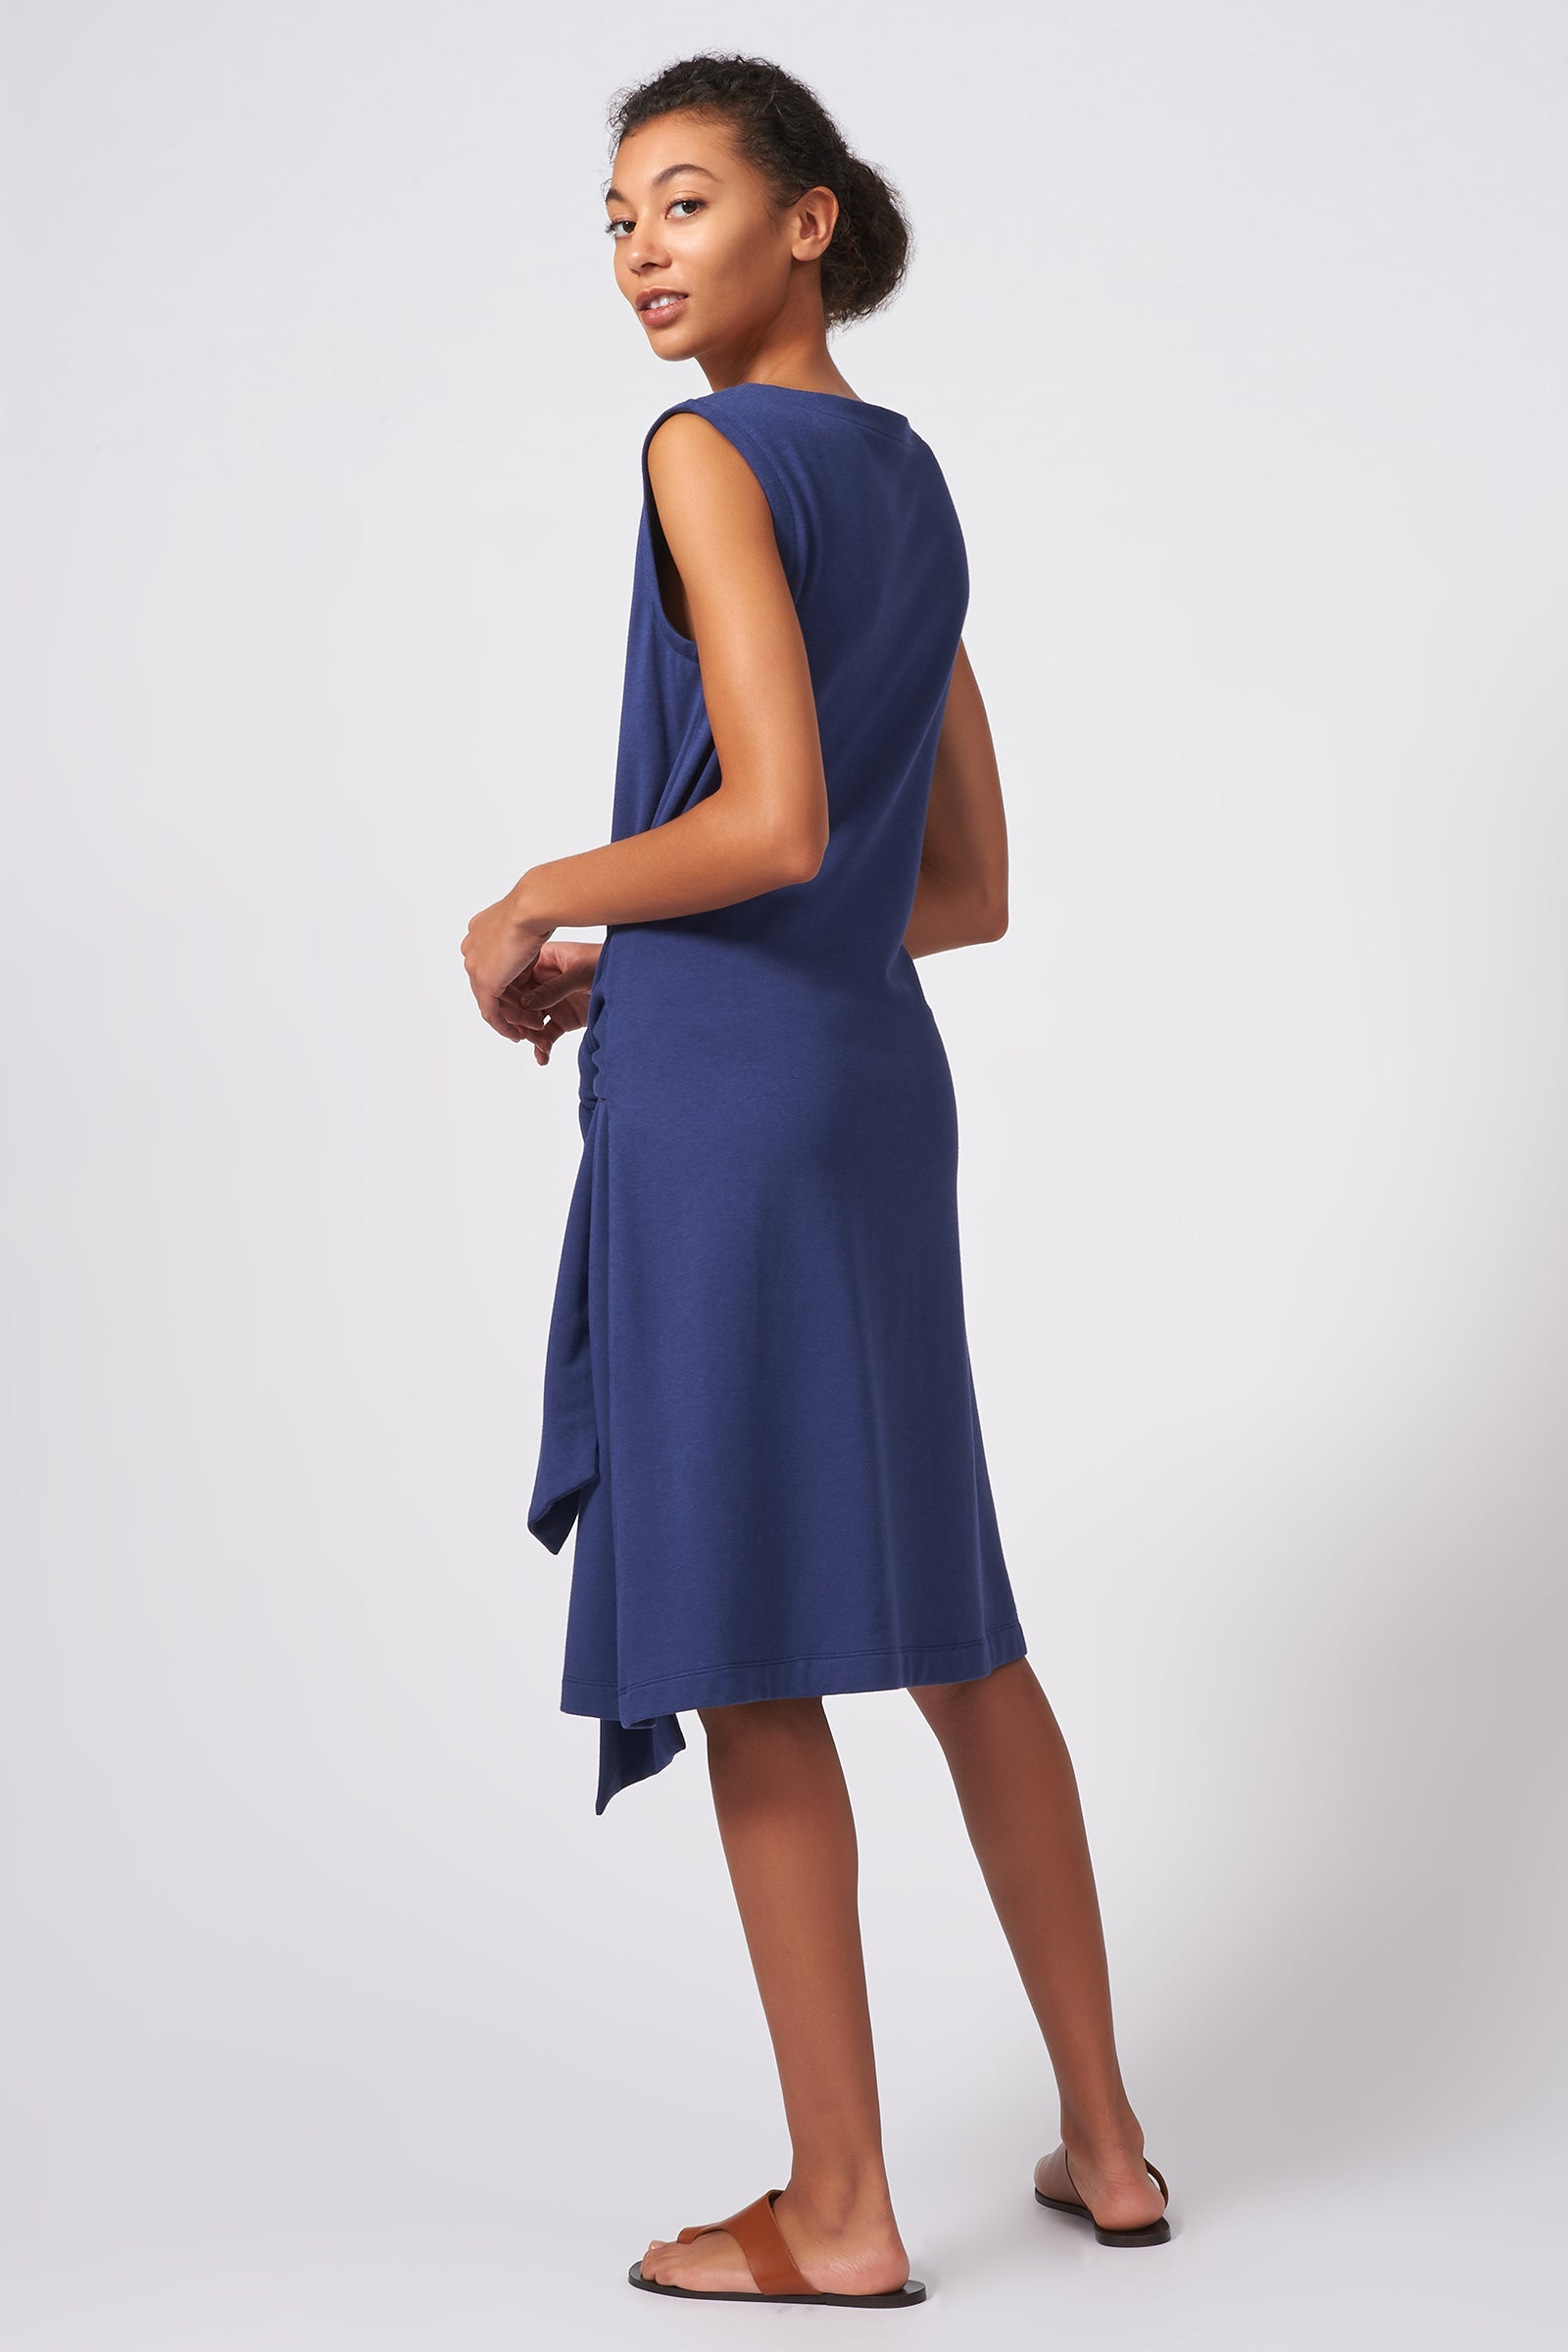 Kal Rieman Tie Waist Dress in Blue on Model Full Back View